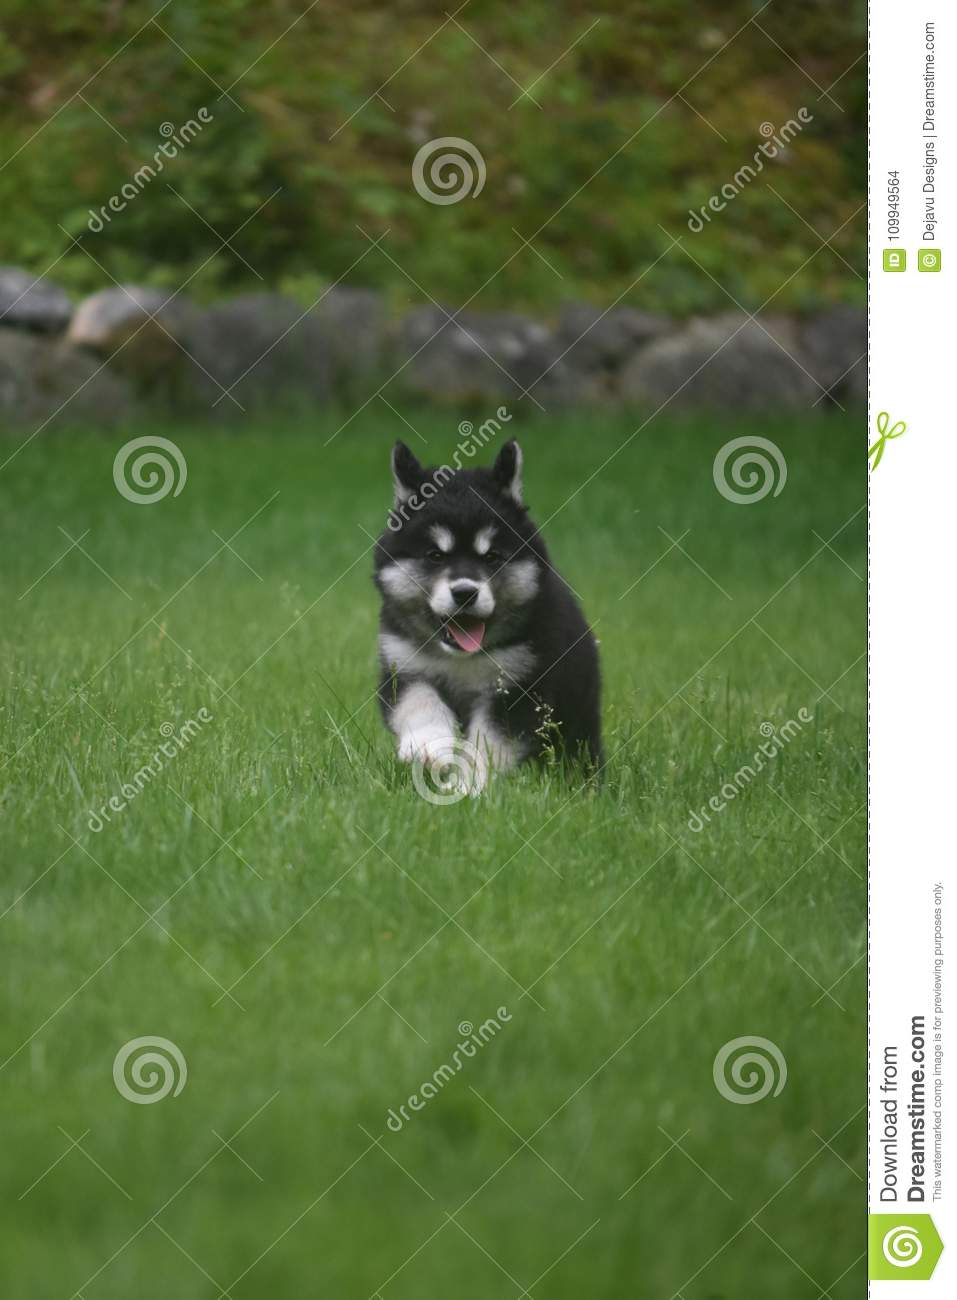 Cute black and white husky puppy running in a field